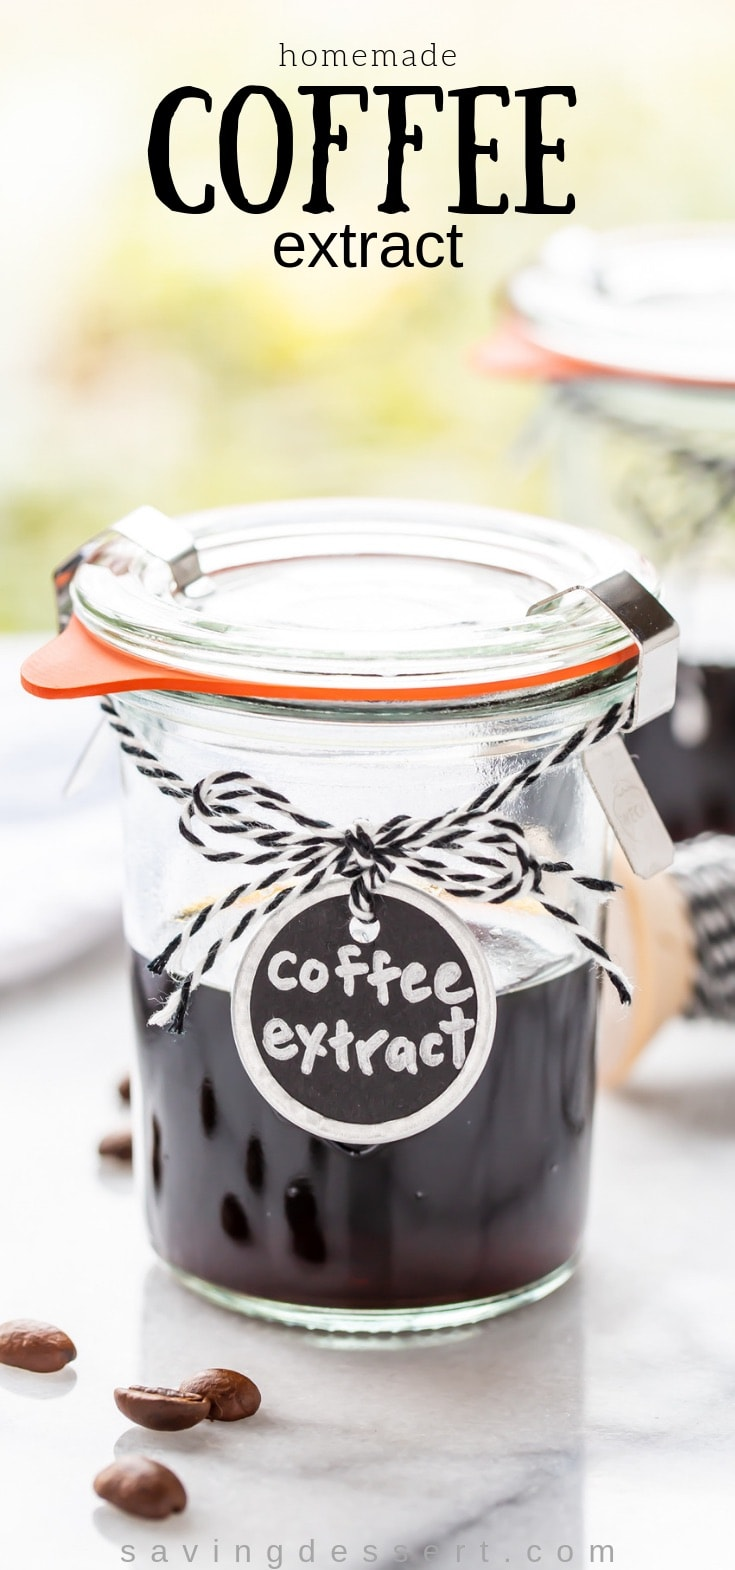 Deliciously rich, homemade Coffee Extract is a handy and delicious addition to your kitchen pantry! #coffee #extract #coffeeextract #mocha #coffeerecipes